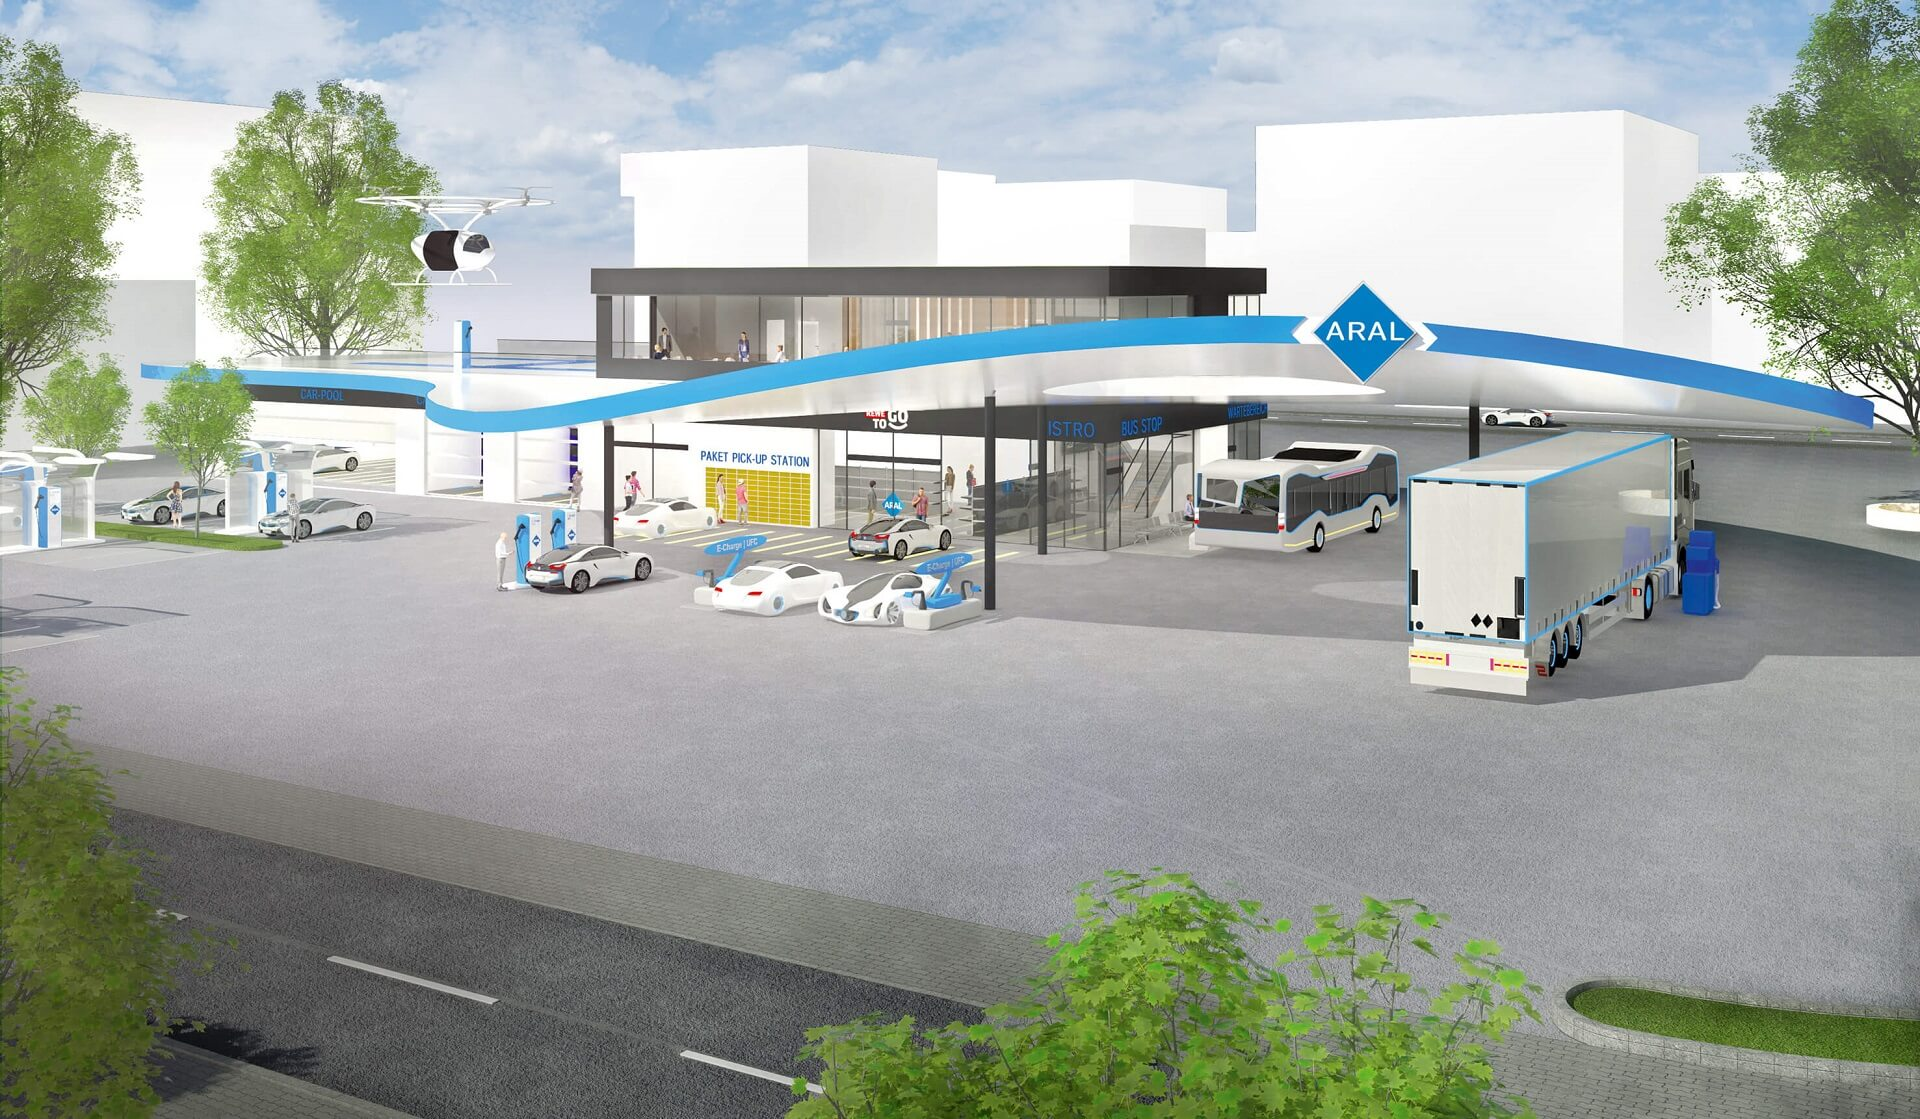 How does a gas station in the future look alike?